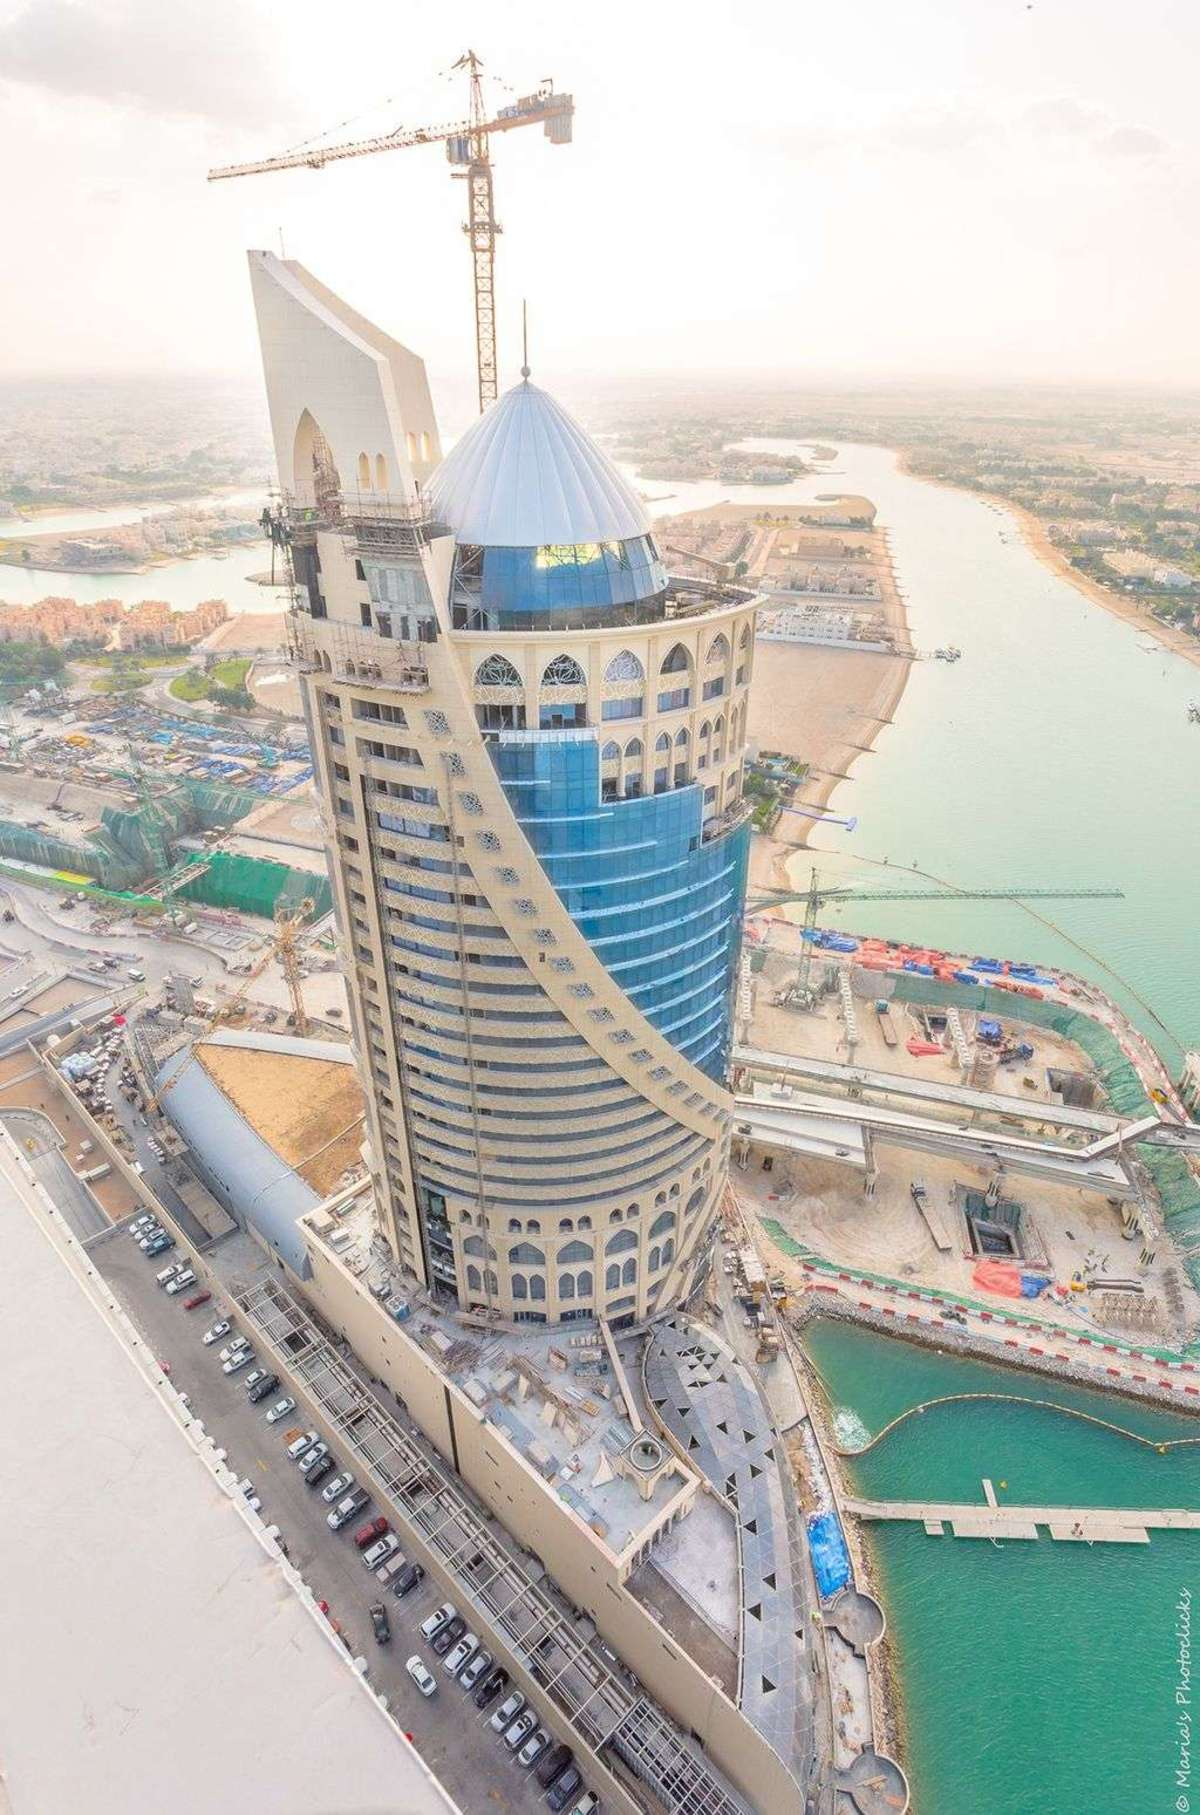 South West Architecture with FMG for Falcon Tower in Doha